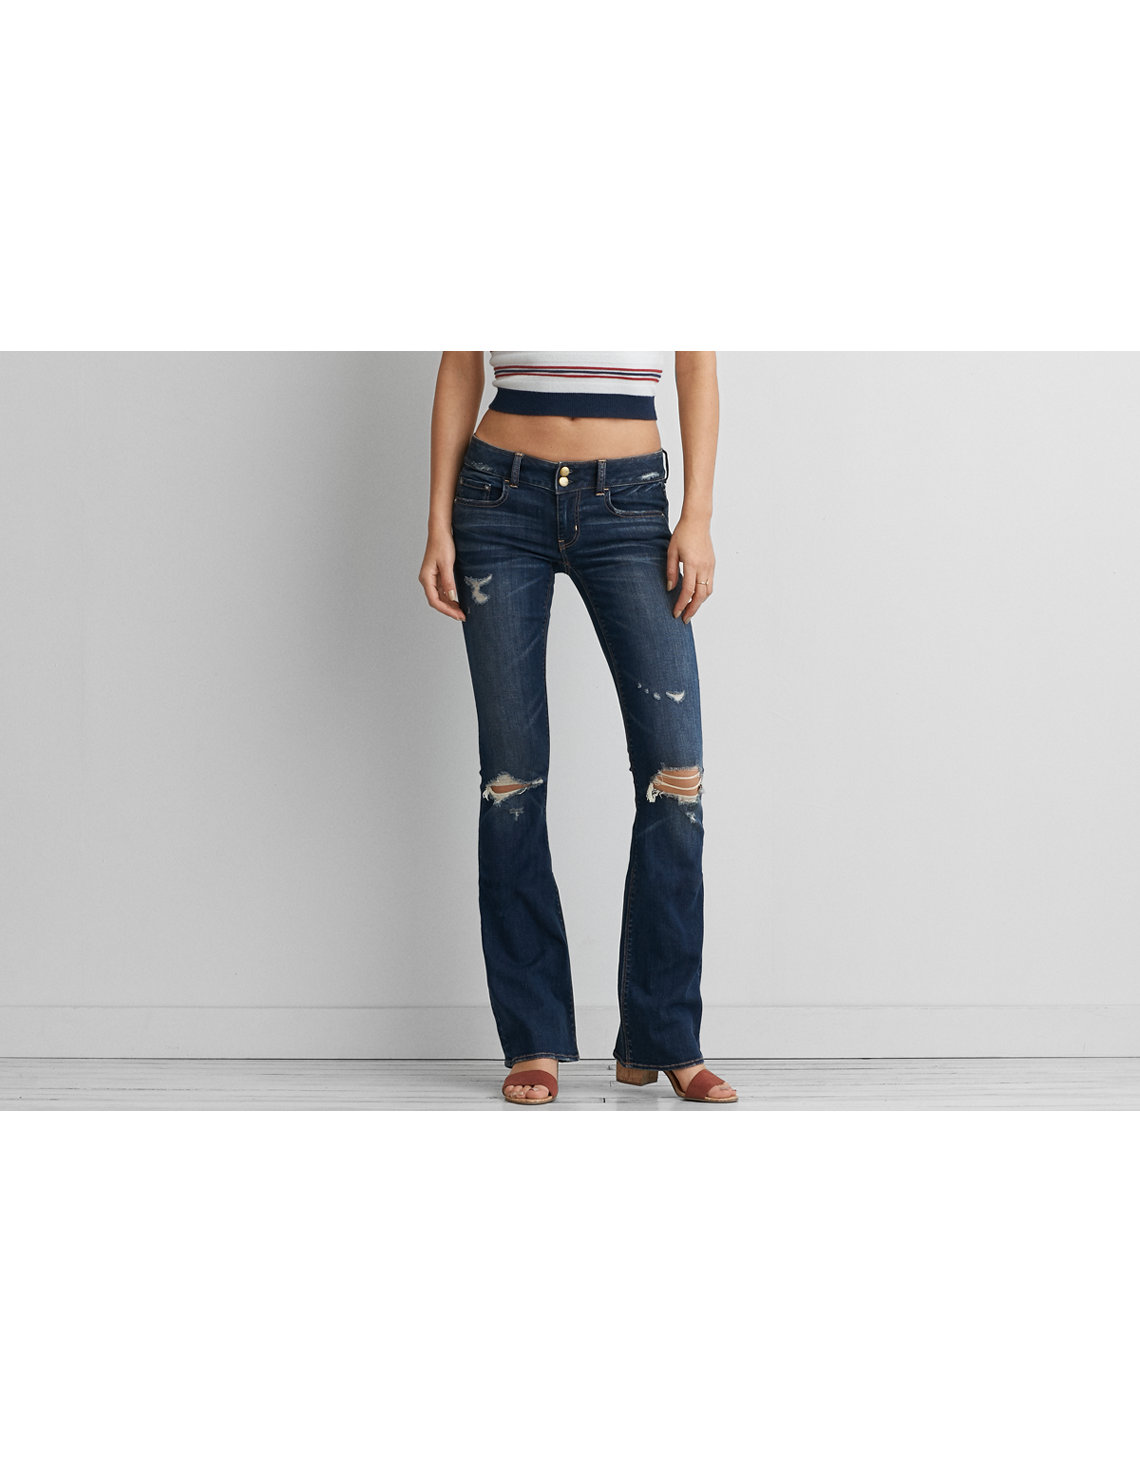 Flare Jean - Womens Ripped Jeans - Destroyed, Distressed American Eagle